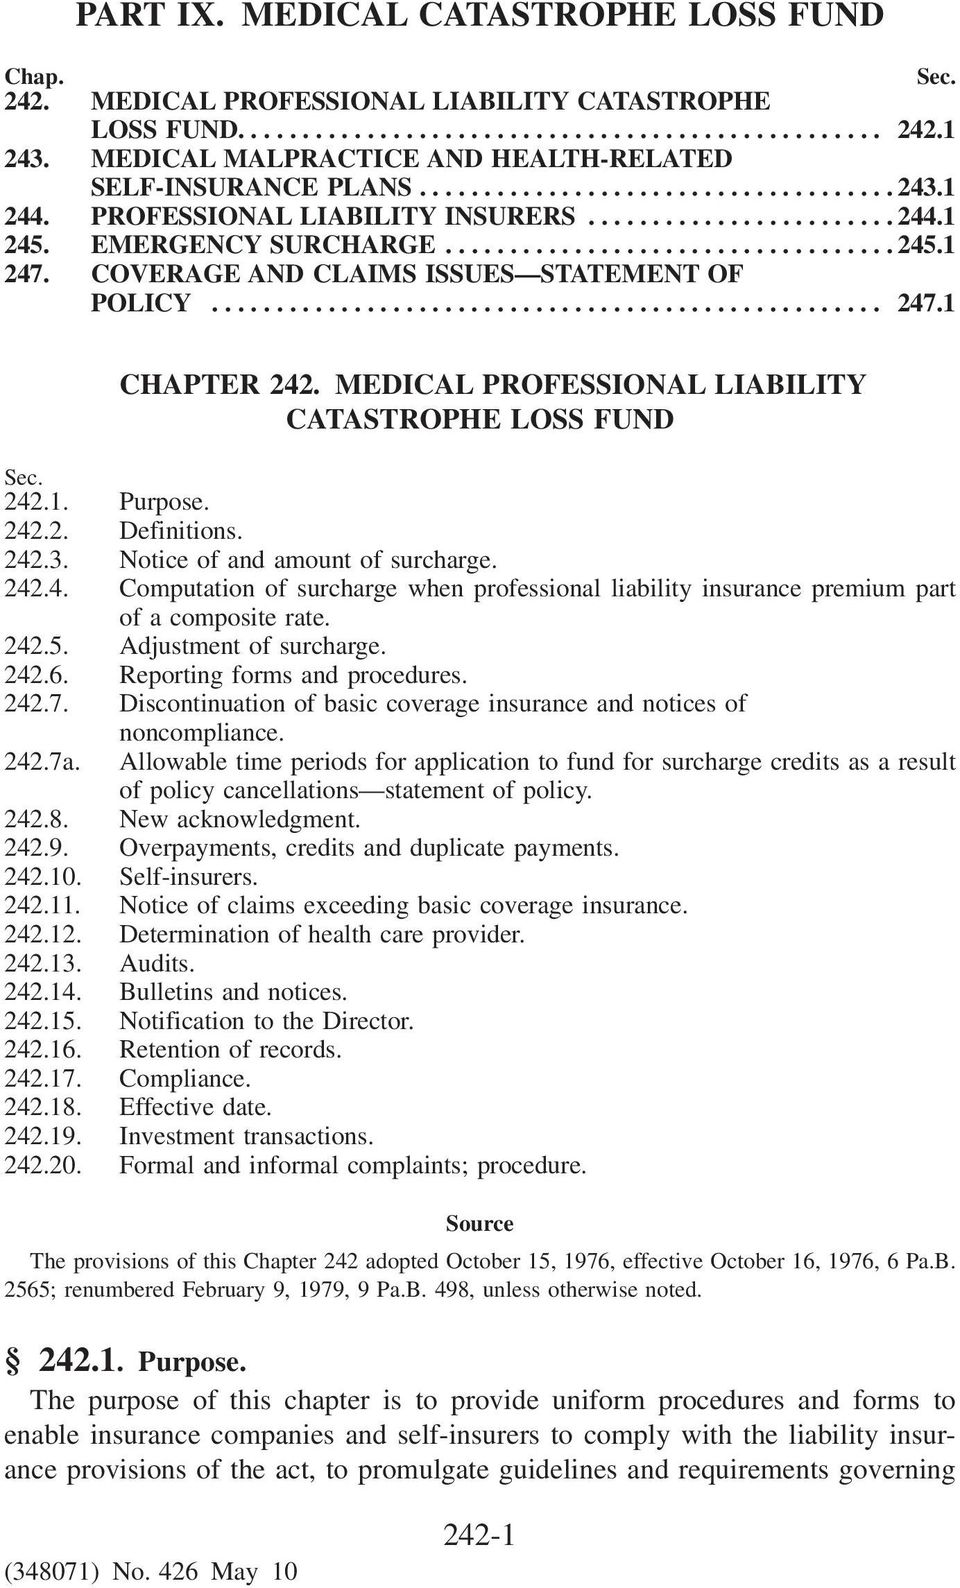 MEDICAL PROFESSIONAL LIABILITY CATASTROPHE LOSS FUND Sec. 242.1. Purpose. 242.2. Definitions. 242.3. Notice of and amount of surcharge. 242.4. Computation of surcharge when professional liability insurance premium part of a composite rate.